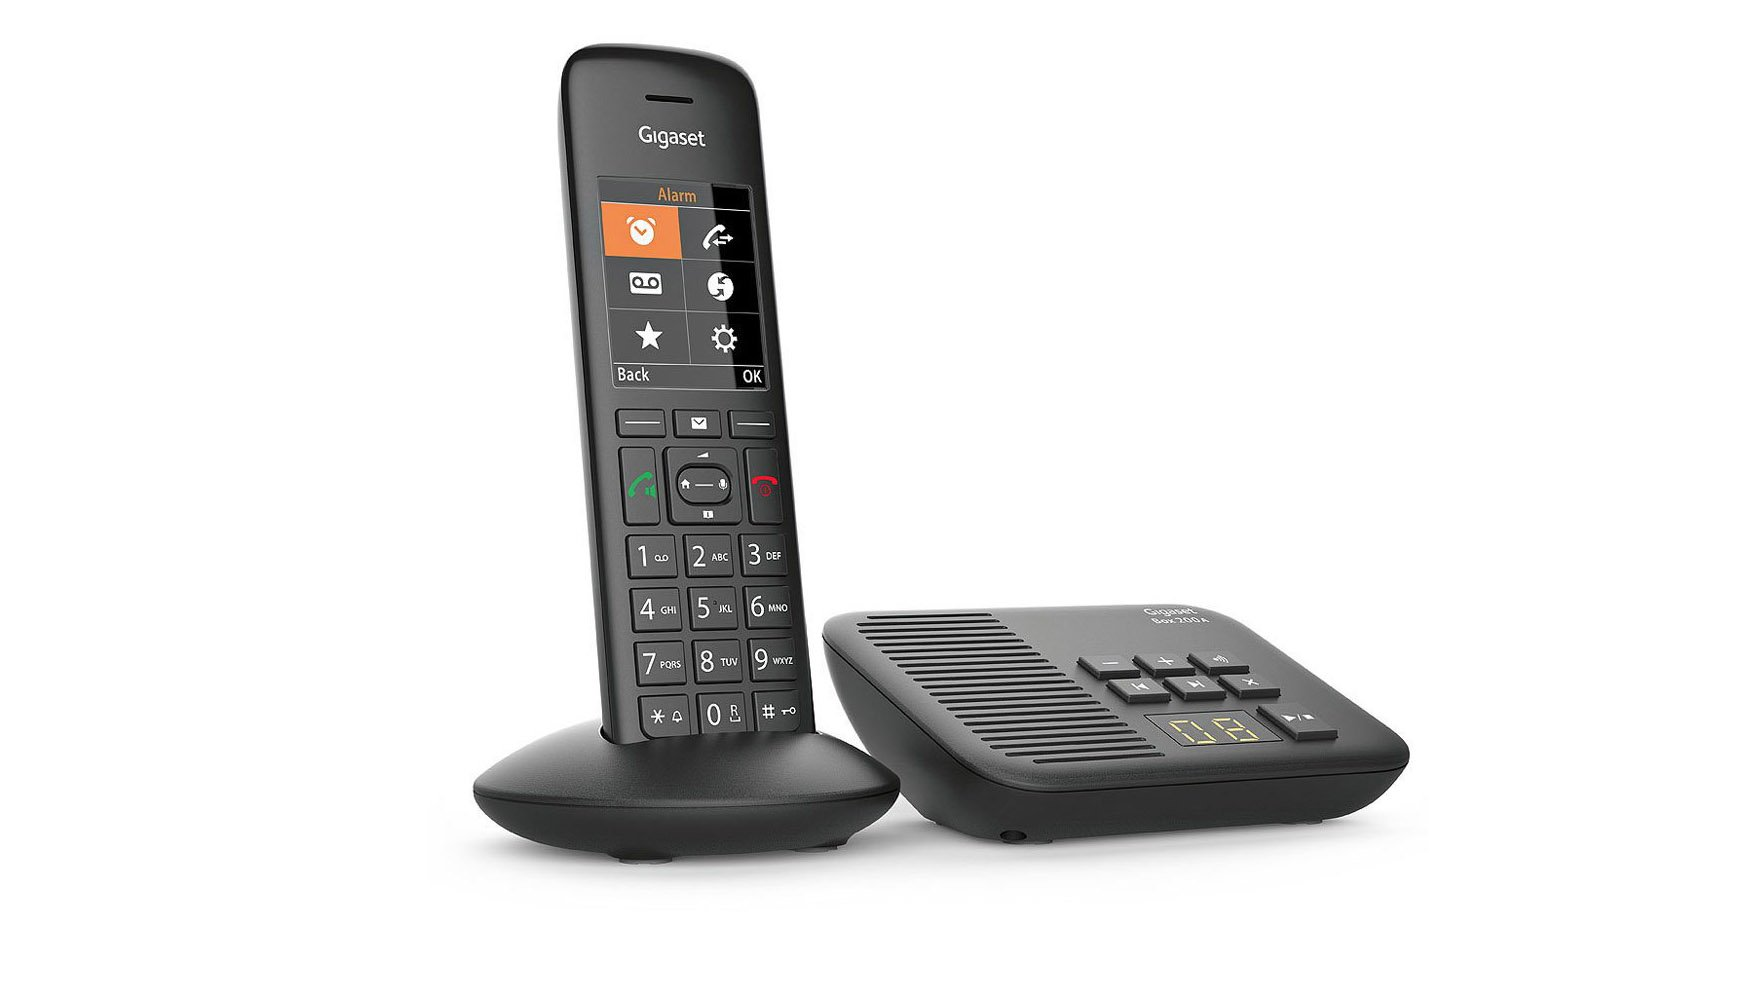 Best cordless phone 2019: Find the perfect landline phone for your